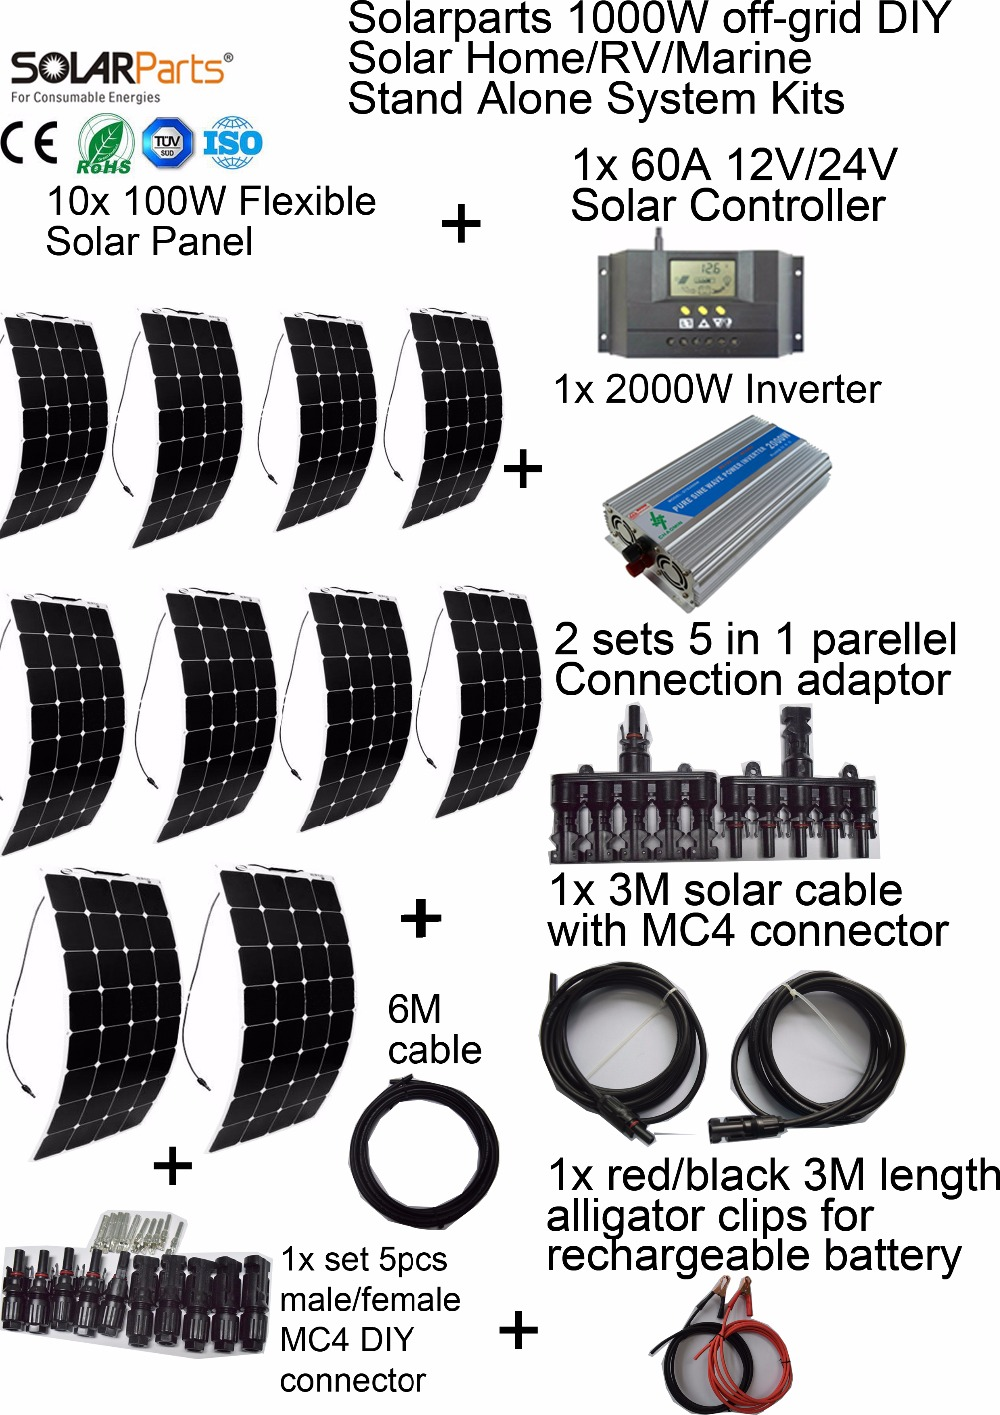 Solarparts 1000W off-grid Solar System KITS flexible solar panel +controller+inverter+cable+adaptor for RV/Marine/Camping/Home . solarparts 100w diy rv marine kits solar system1x100w flexible solar panel 12v 1 x10a 12v 24v solar controller set cables cheap